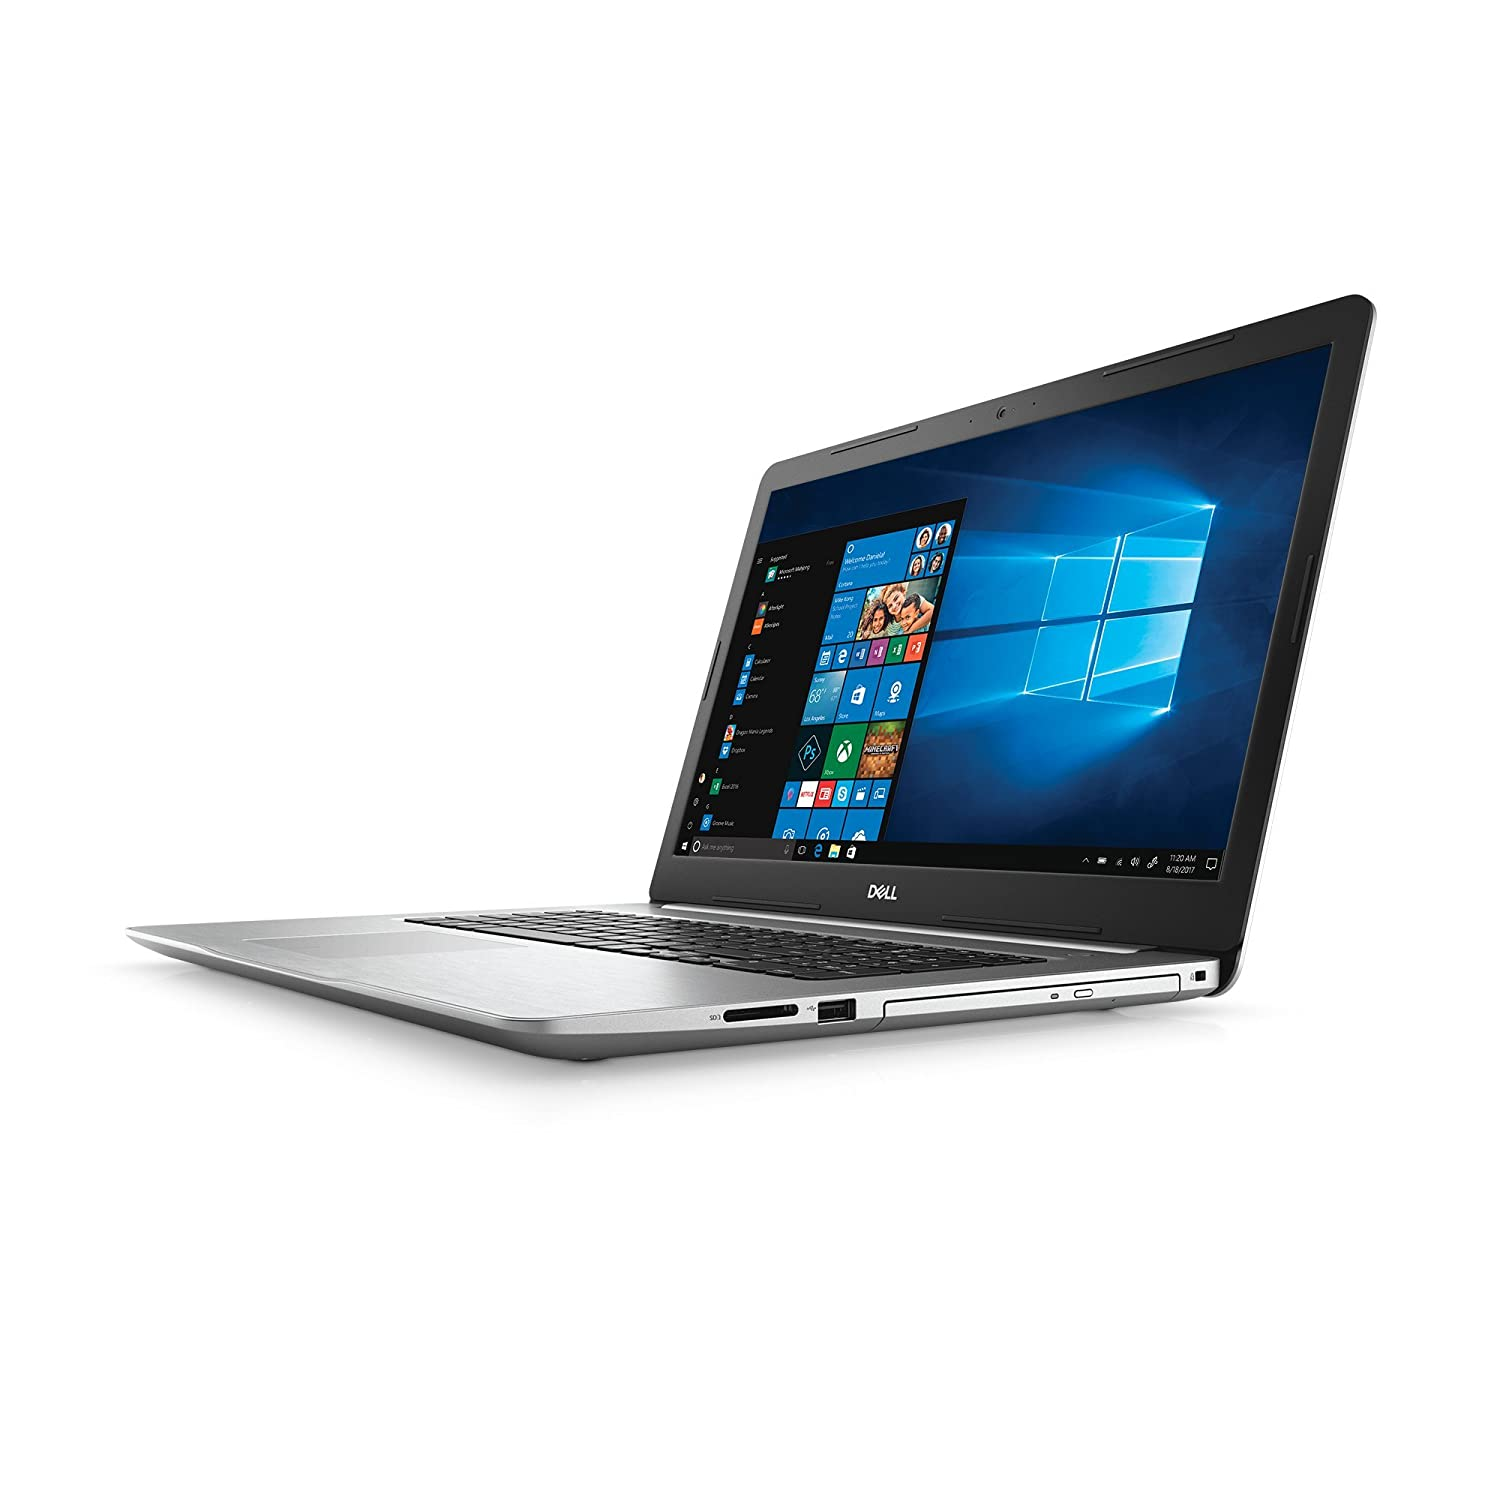 Amazon.com: 2018 Dell Inspiron 17 5770 Laptop - 17.3